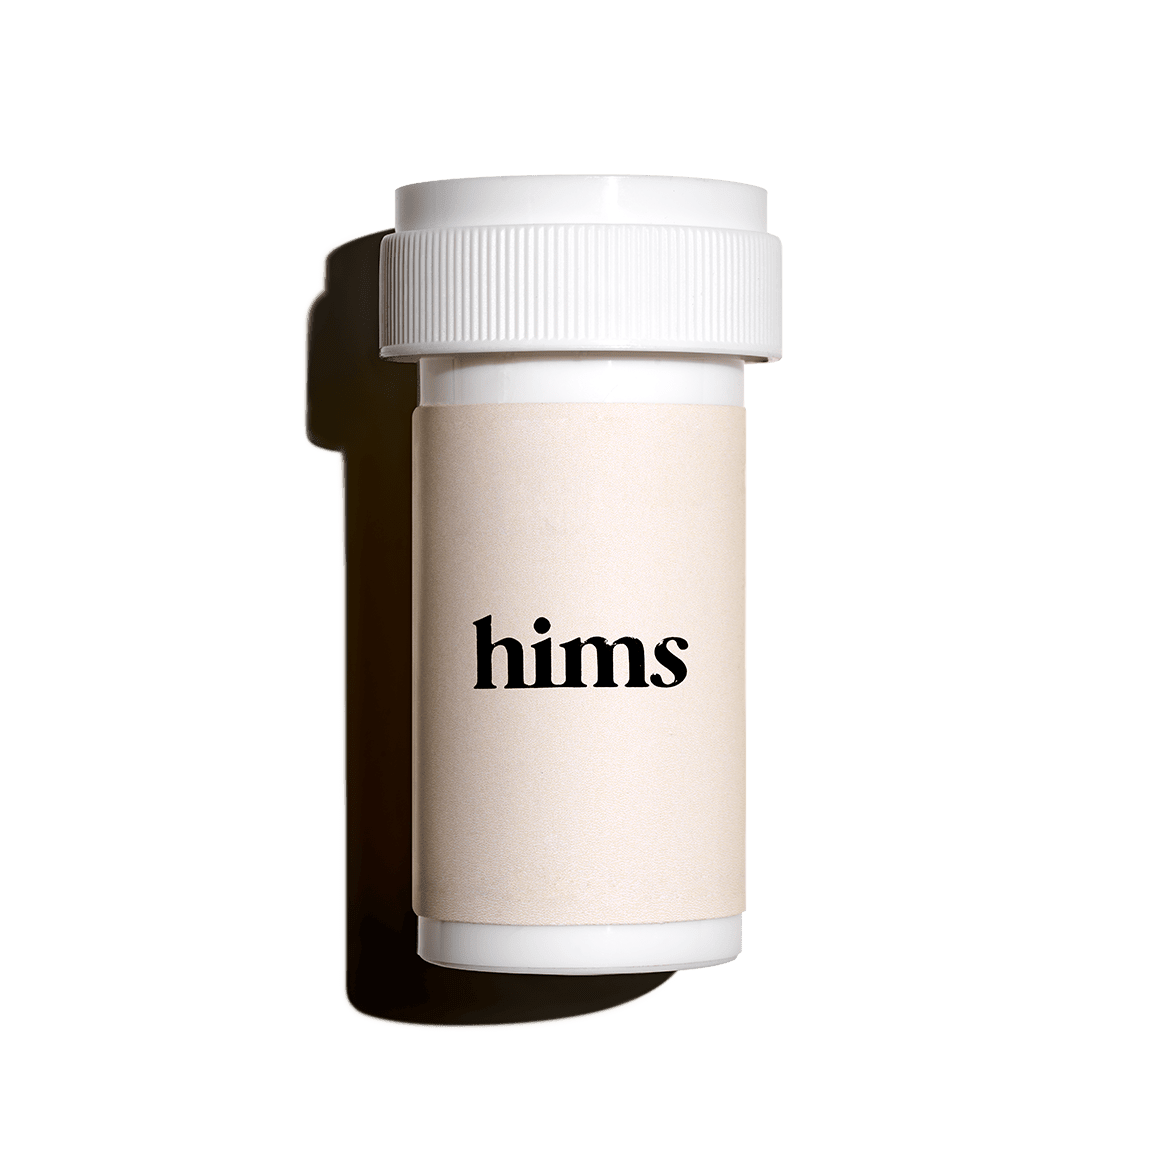 A medication bottle with 'hims' on the label